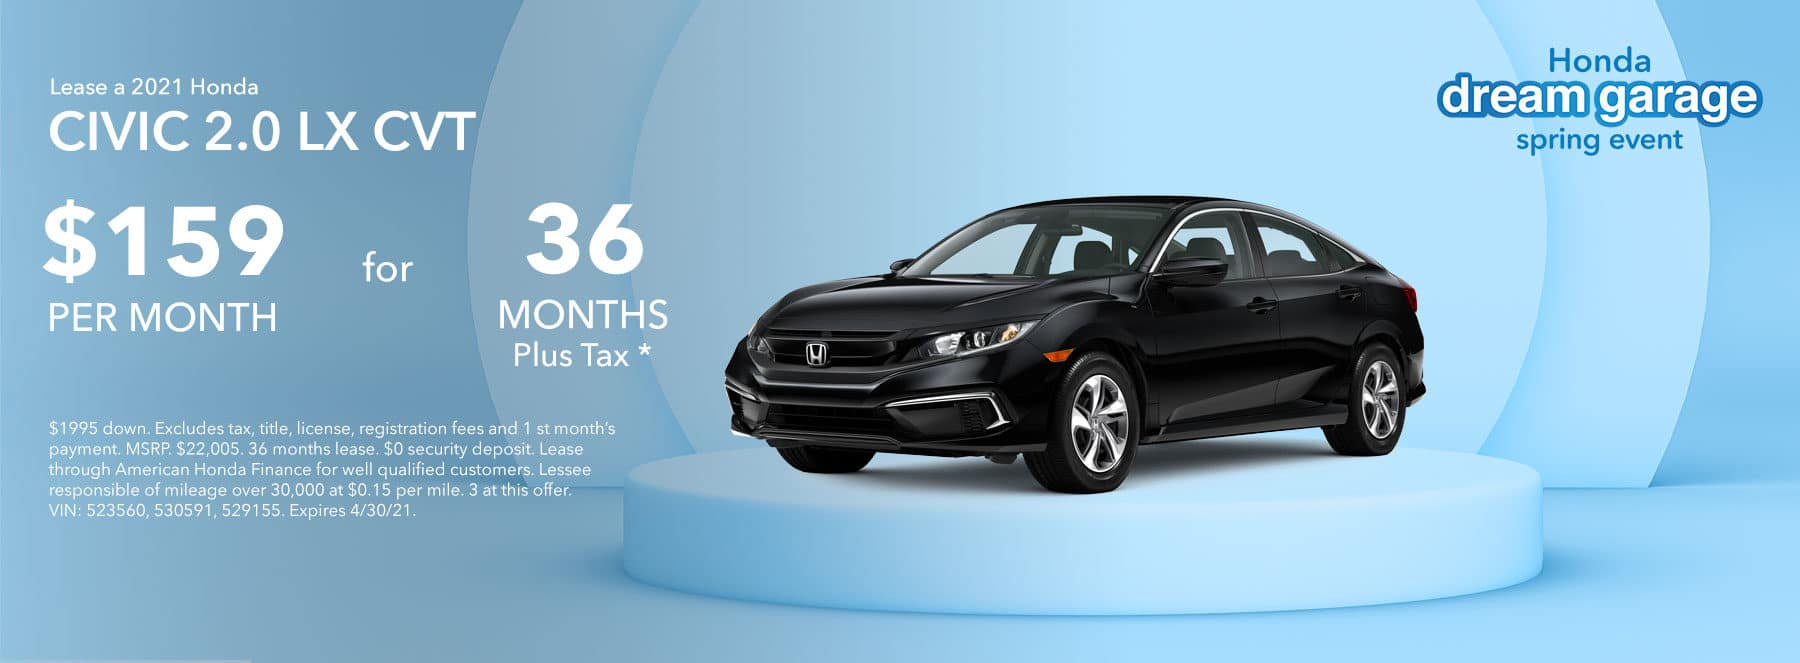 2021 Honda CIVIC LX 2.0L CVT Lease for $159 plus Tax for 36 Months